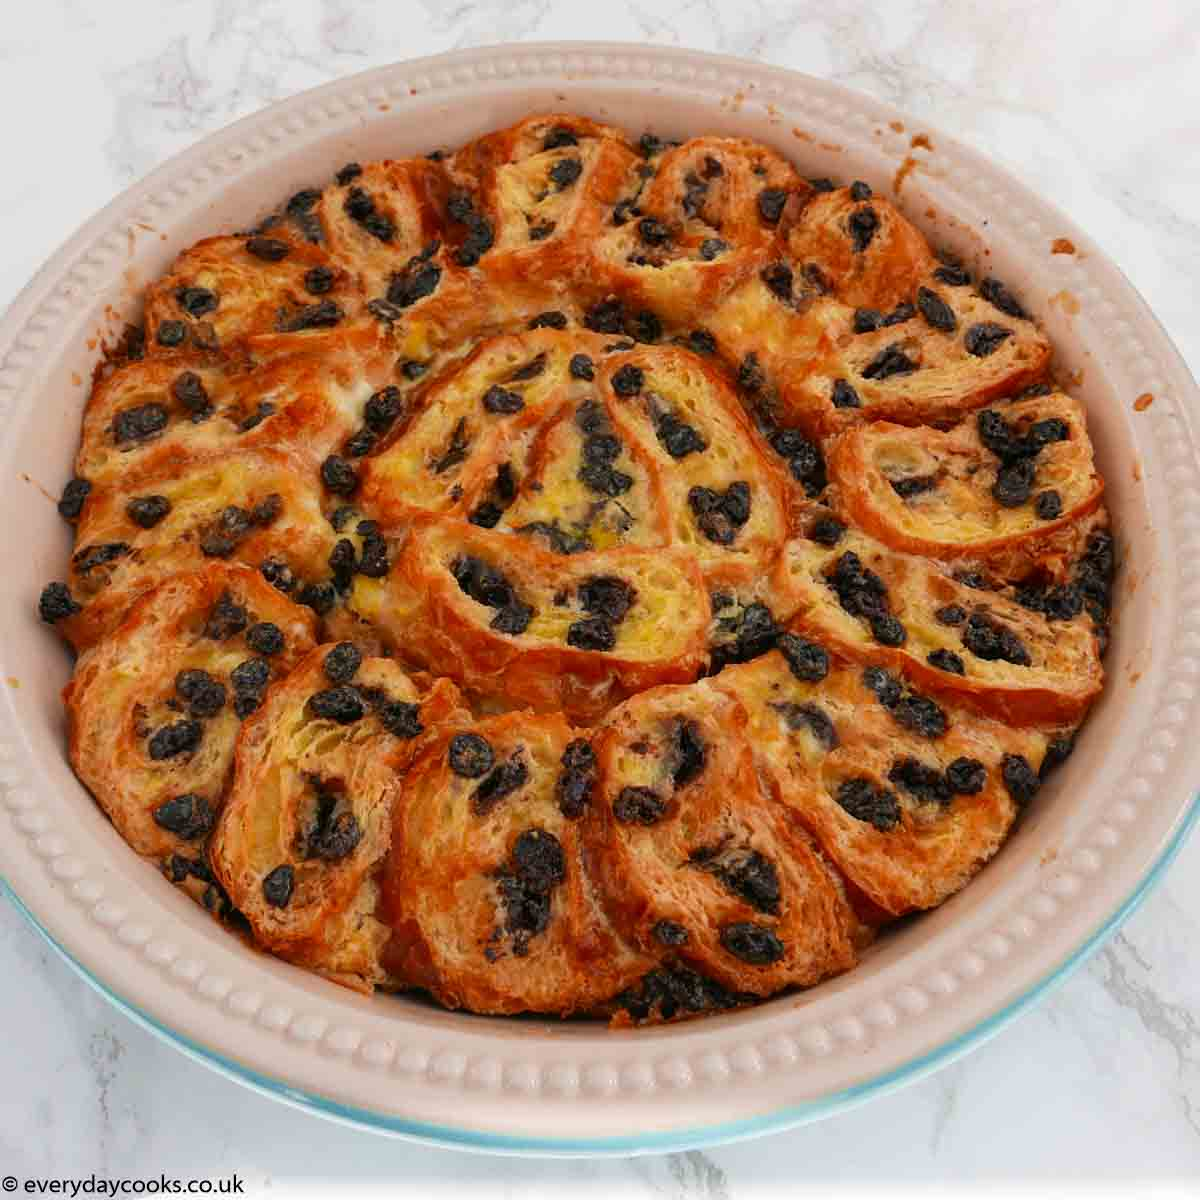 Brioche Bread and Butter Pudding. Slices of chocolate brioche with currants in a custard in a round pie dish